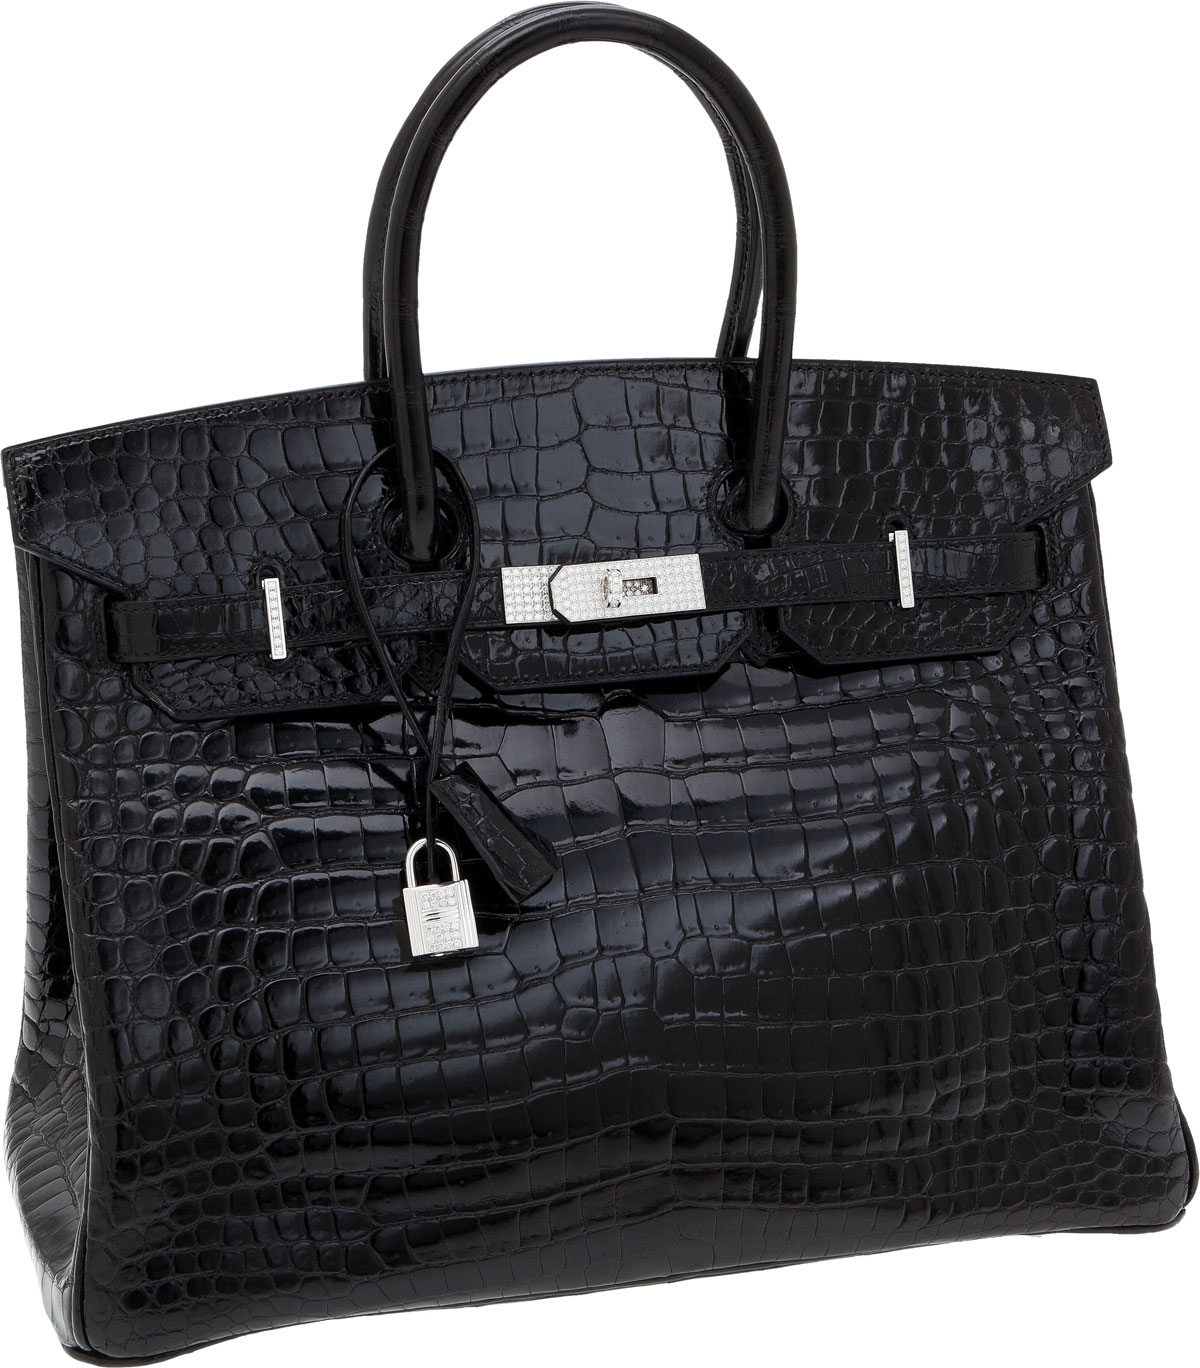 birkin bag.com - Hermes Black Crocodile Birkin Bag Diamonds